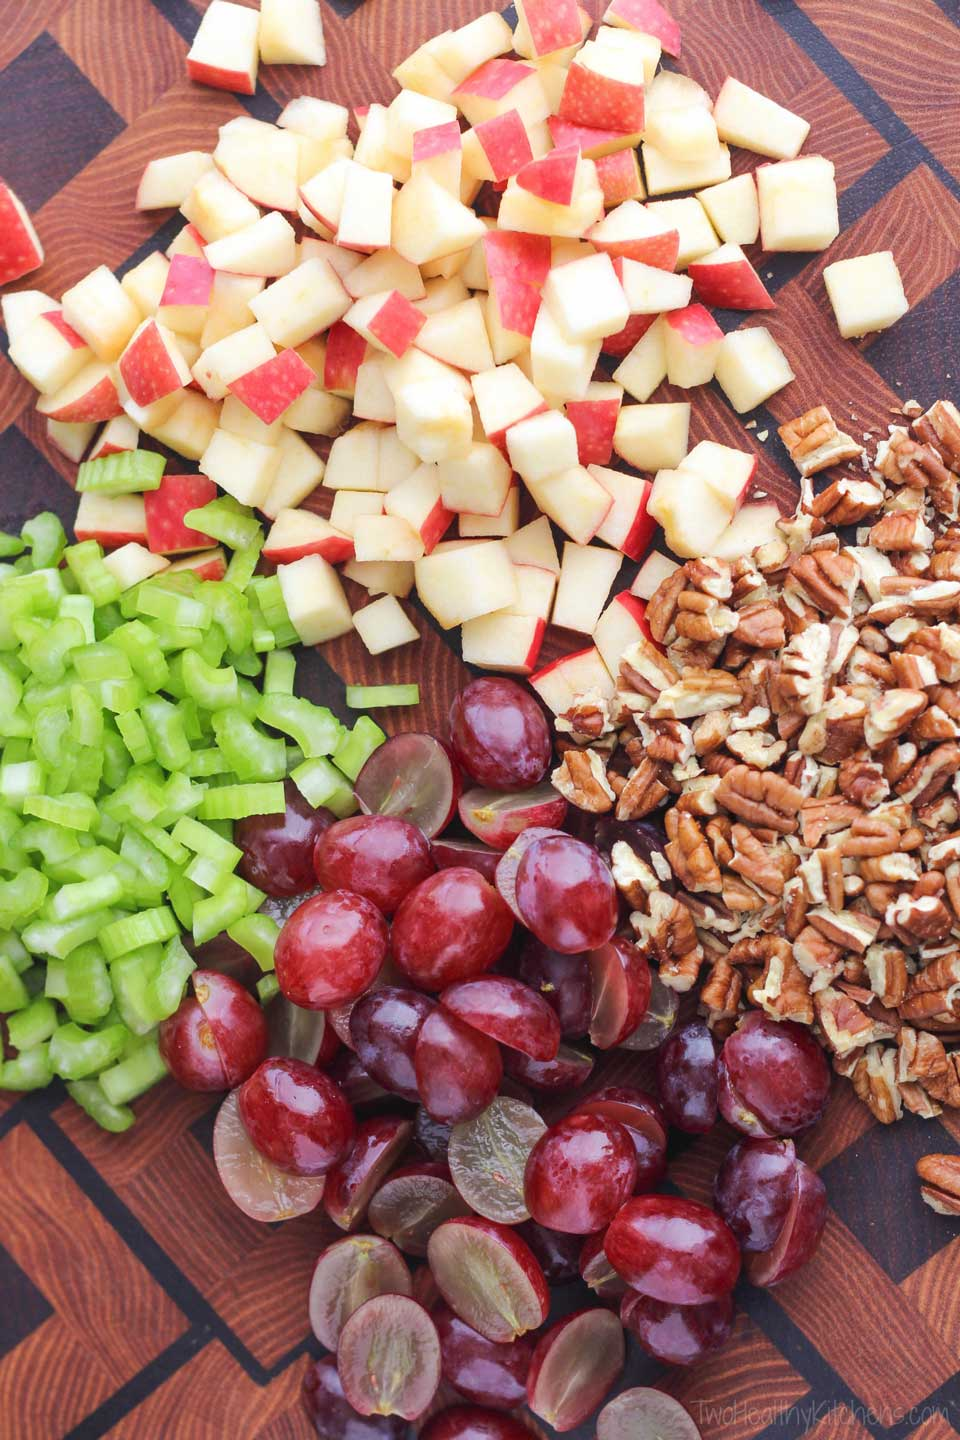 The ingredients for this healthy chicken salad include fresh, juicy grapes, crisp apples and crunchy pecans. So delicious!